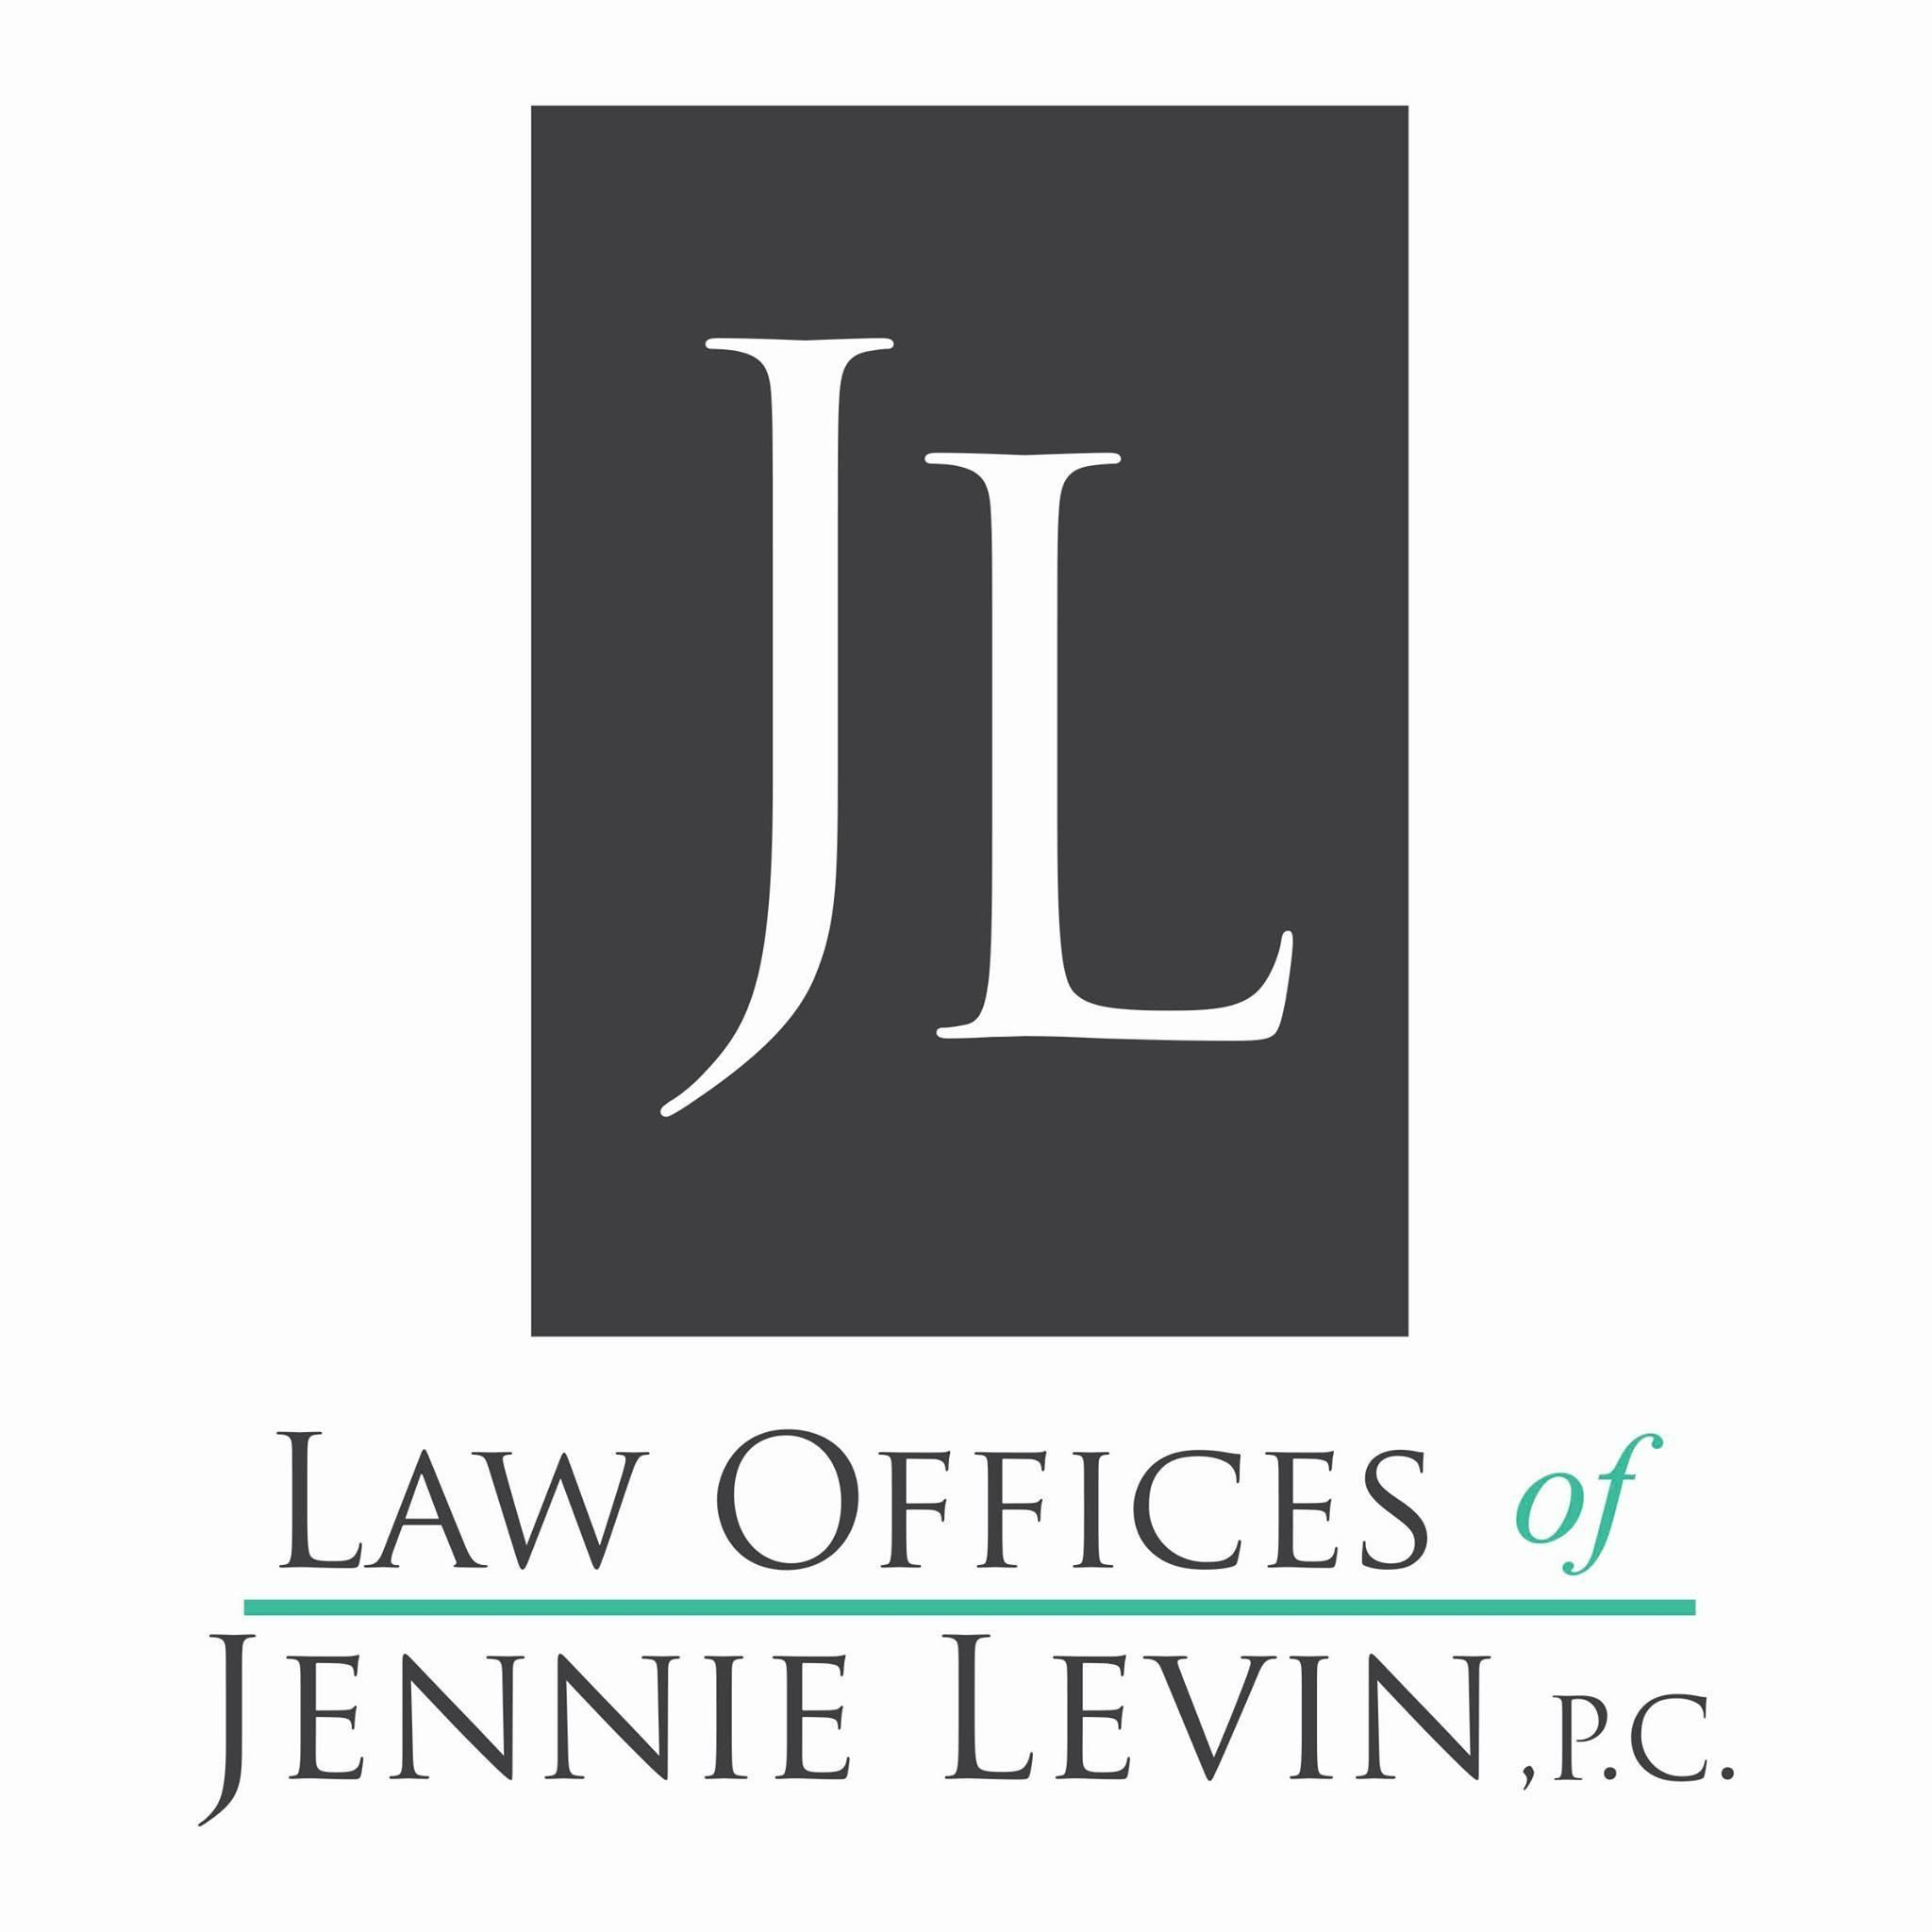 Law Offices of Jennie Levin, P.C. image 1